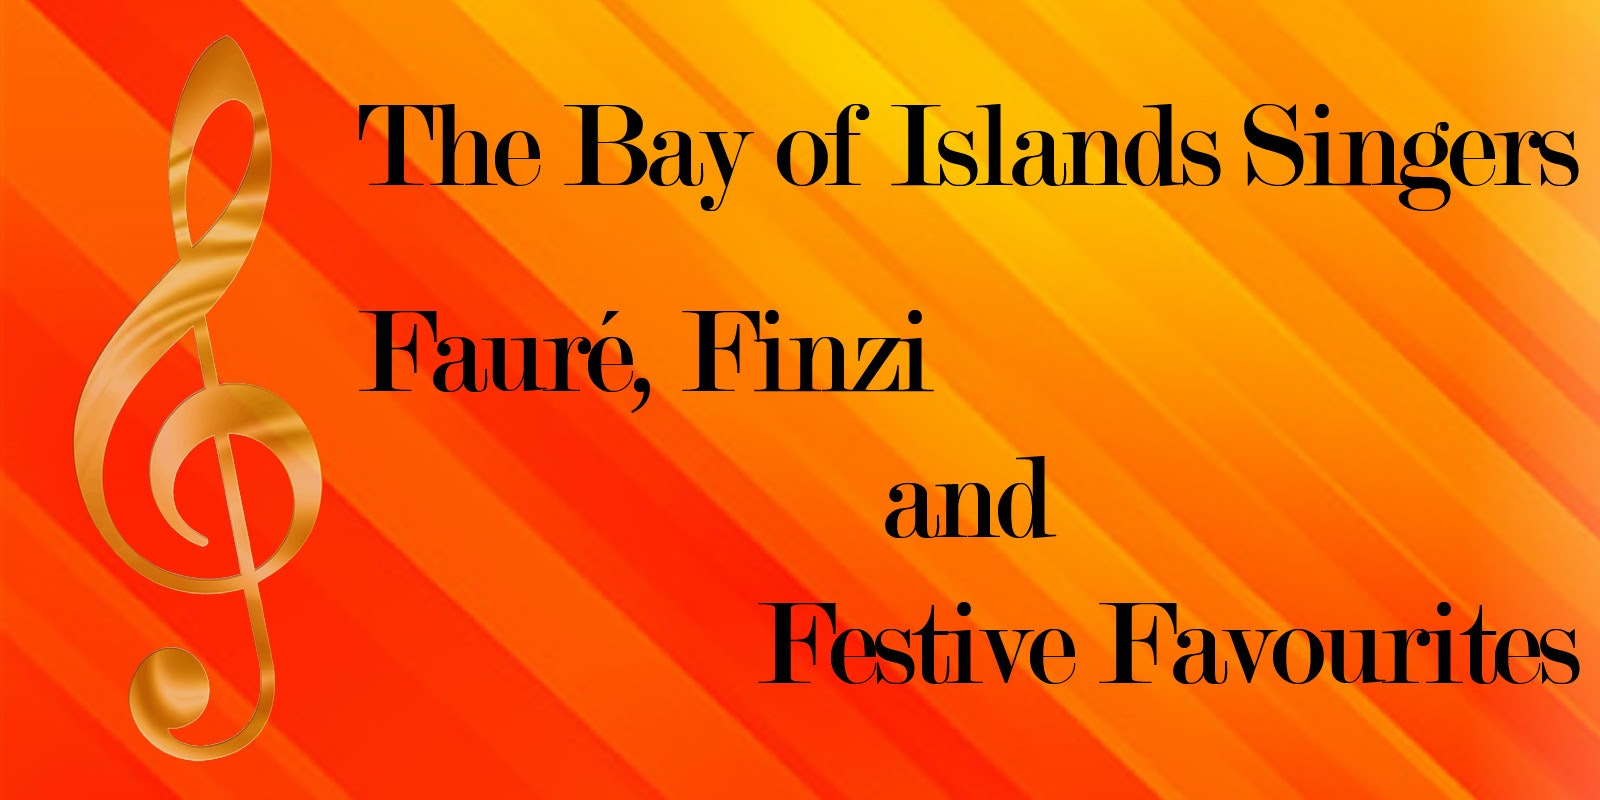 Fauré, Finzi and Festive Favourites